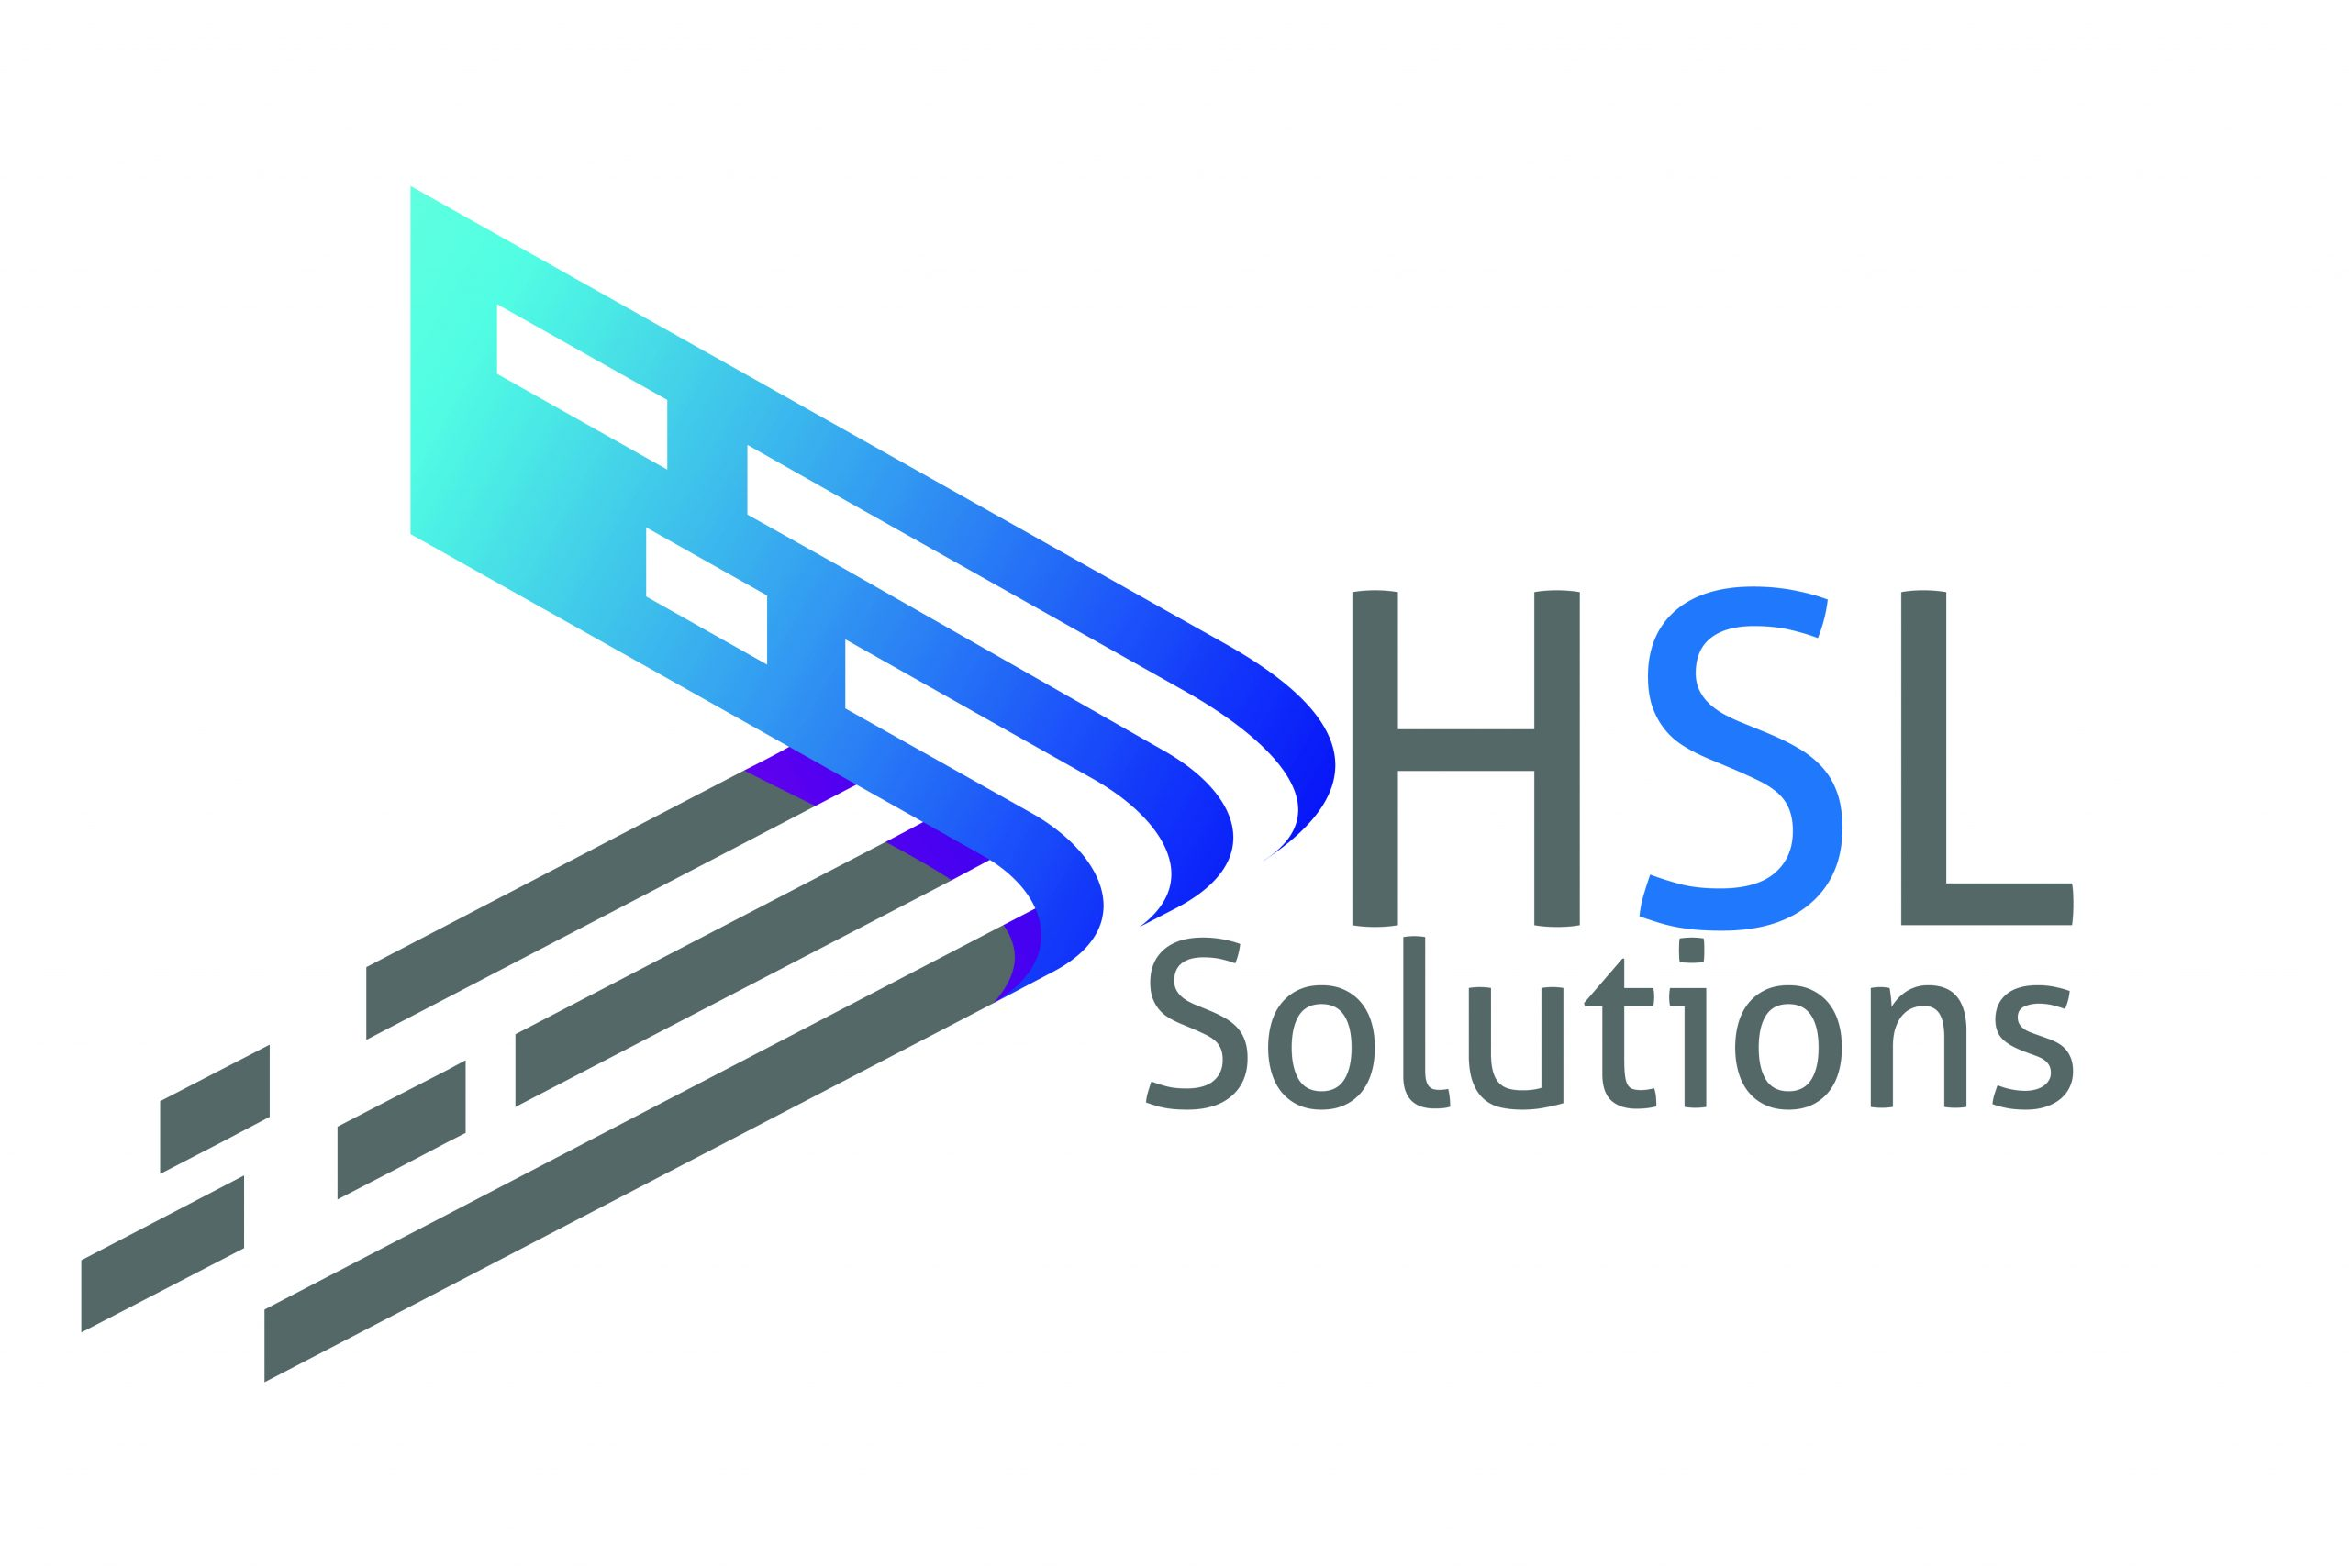 High Seas Logistic Solutions